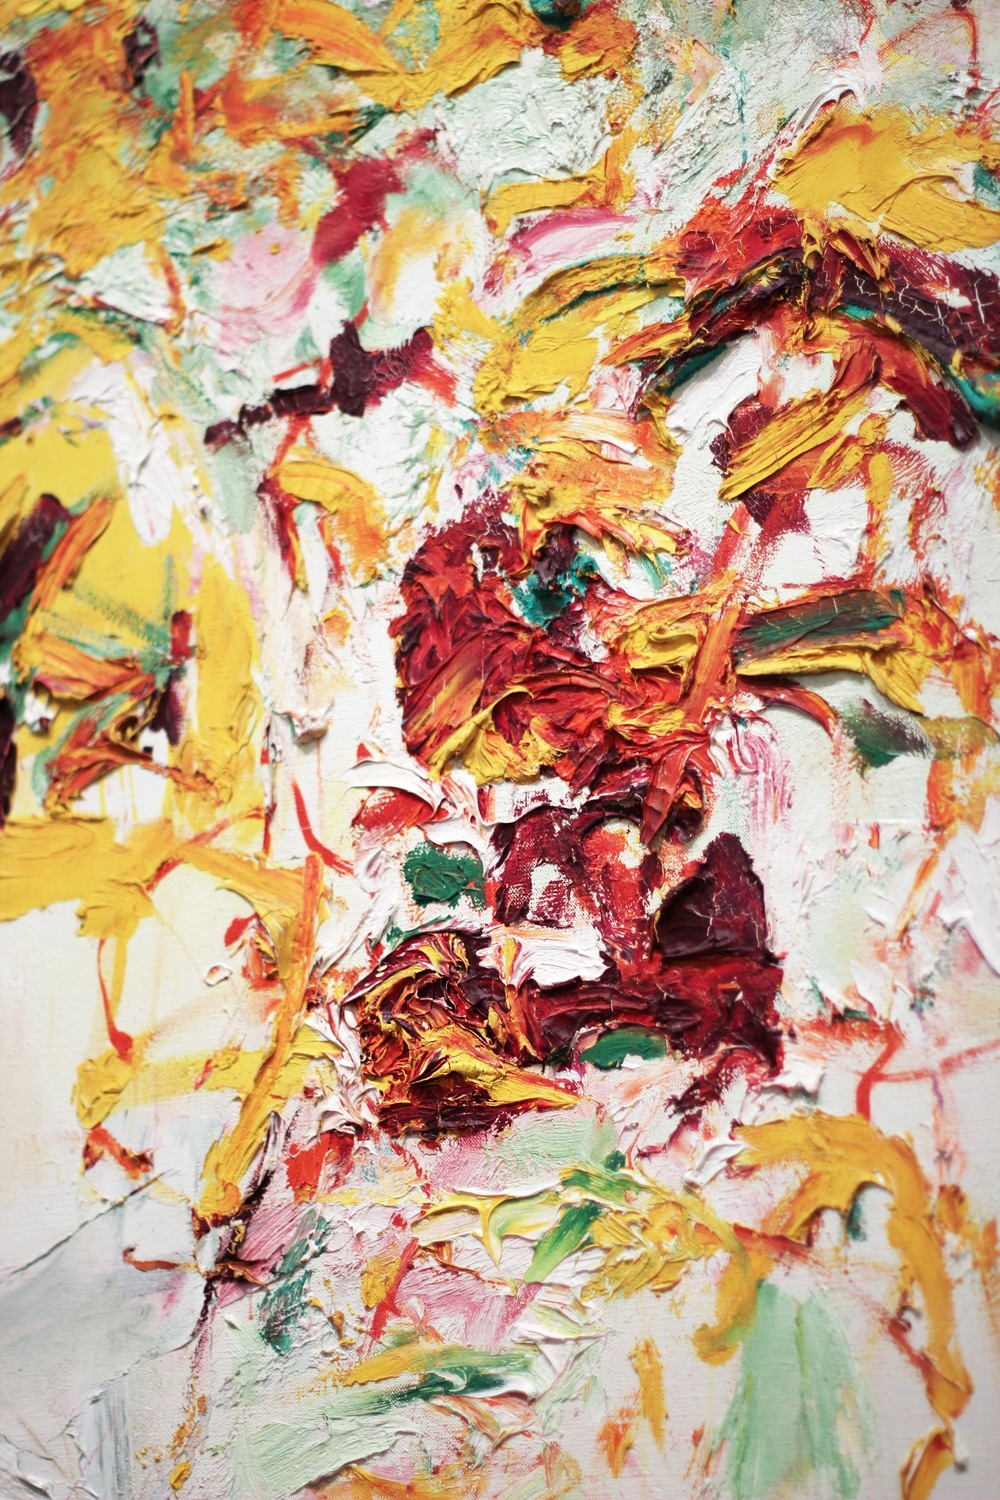 Joan Mitchell's Sunflowers